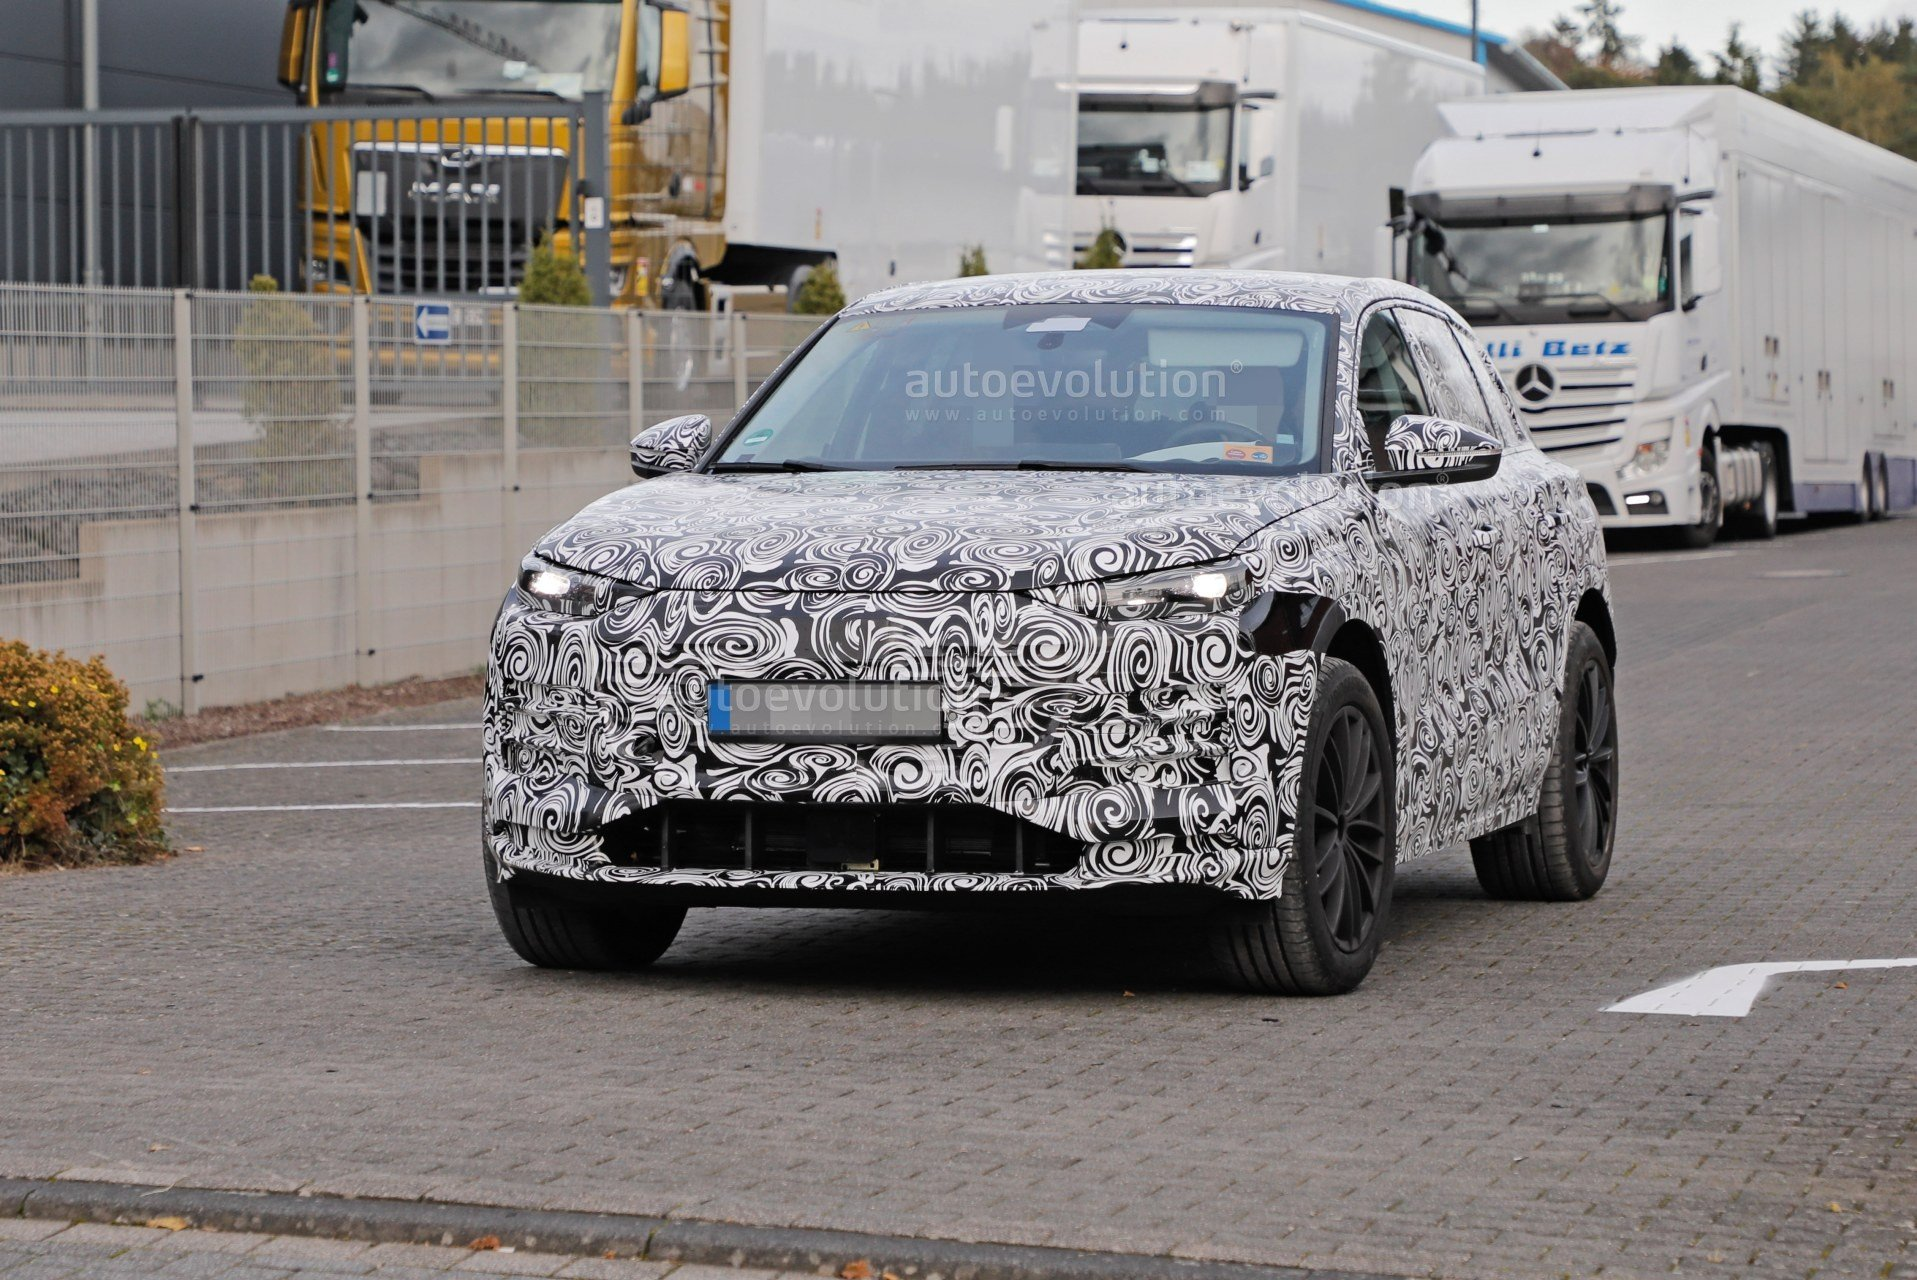 2023-audi-q6-e-tron-prototype-spied-wearing-full-camouflage-is-fully-electric-171522_1 (1).jpg